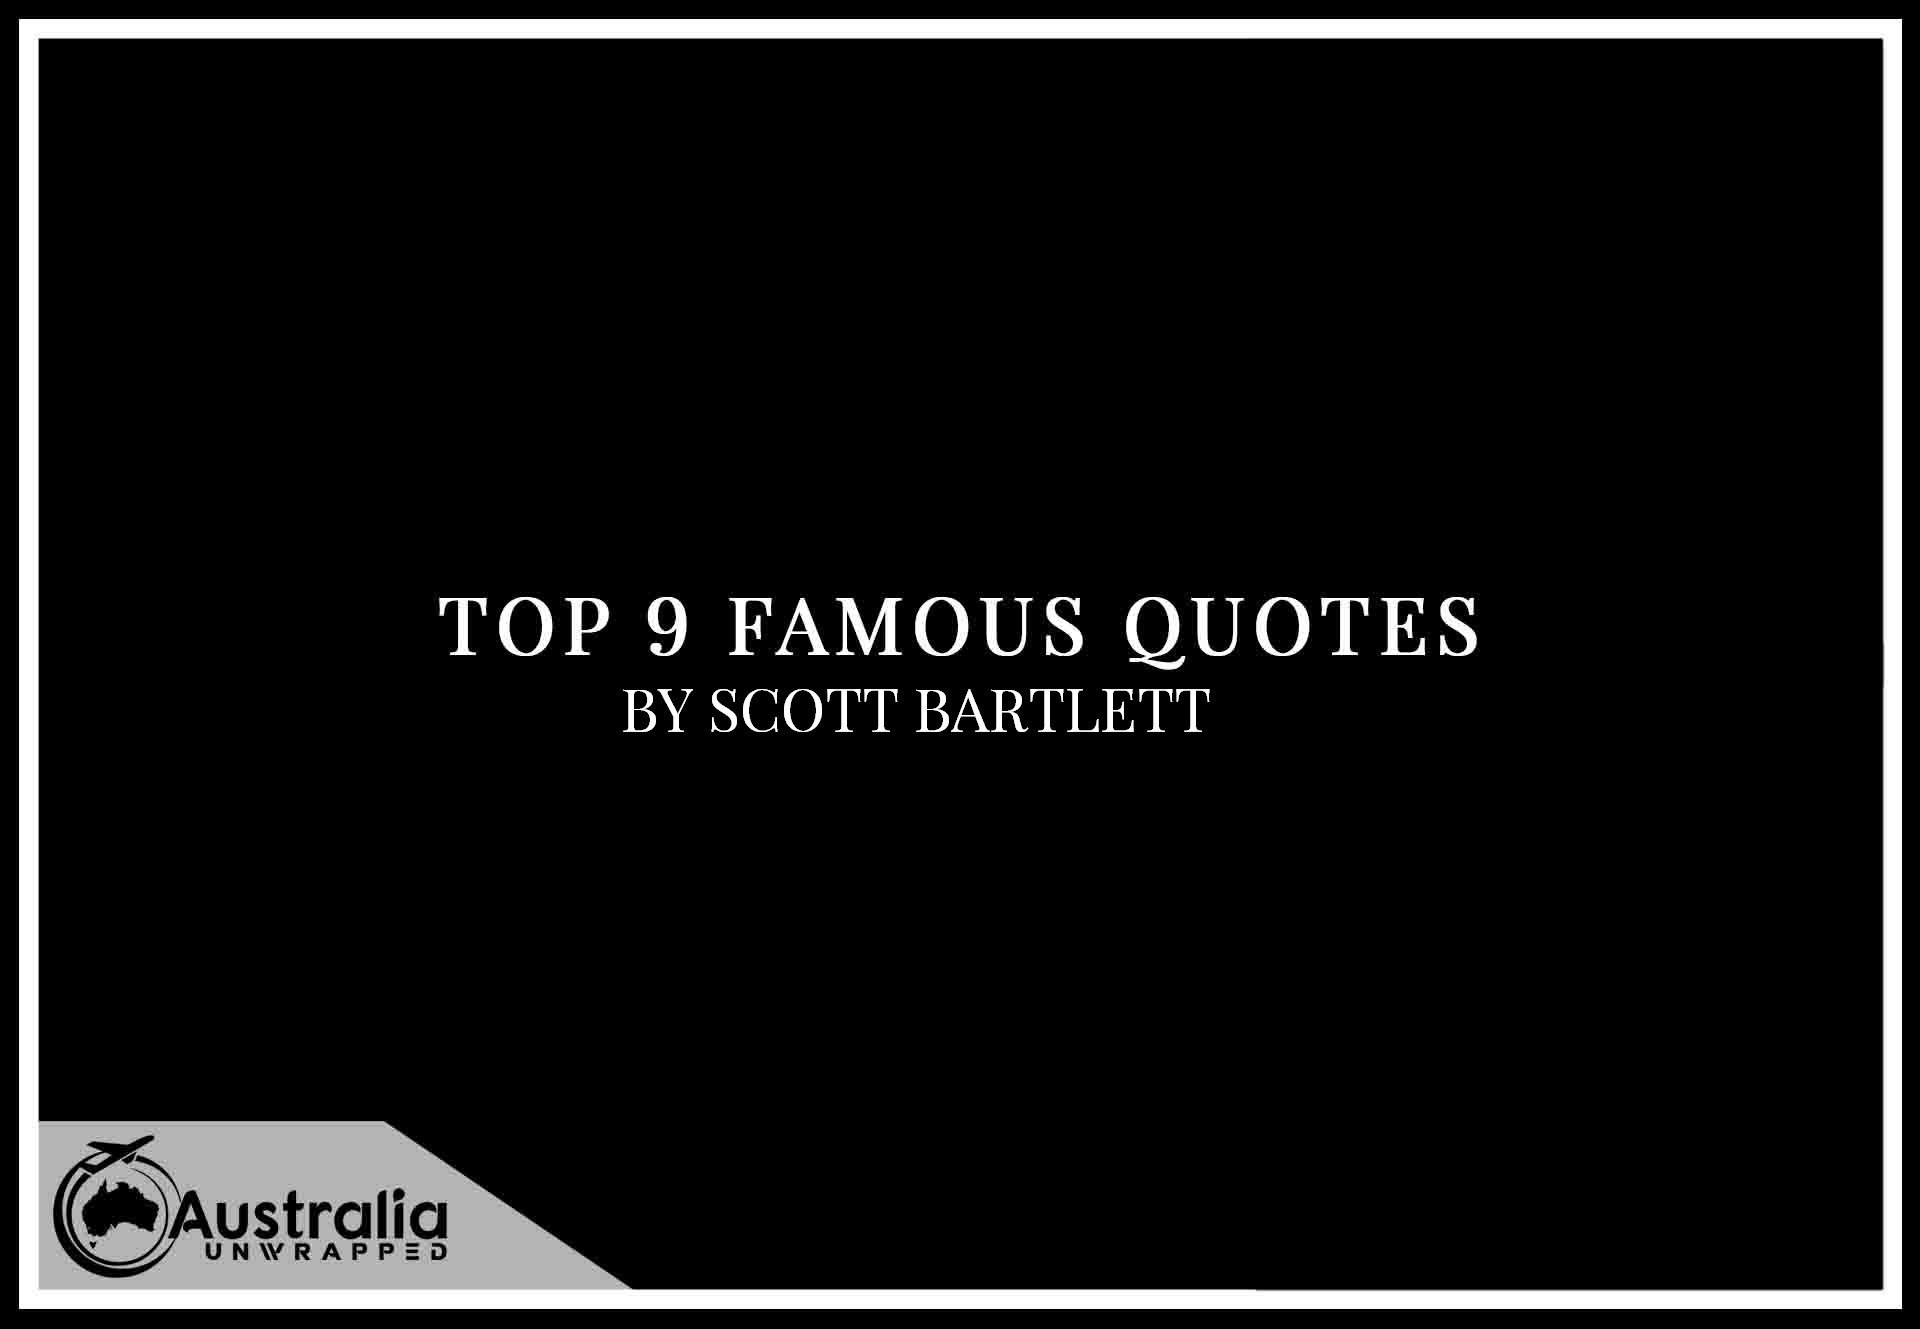 Top 9 Famous Quotes by Author Scott Bartlett